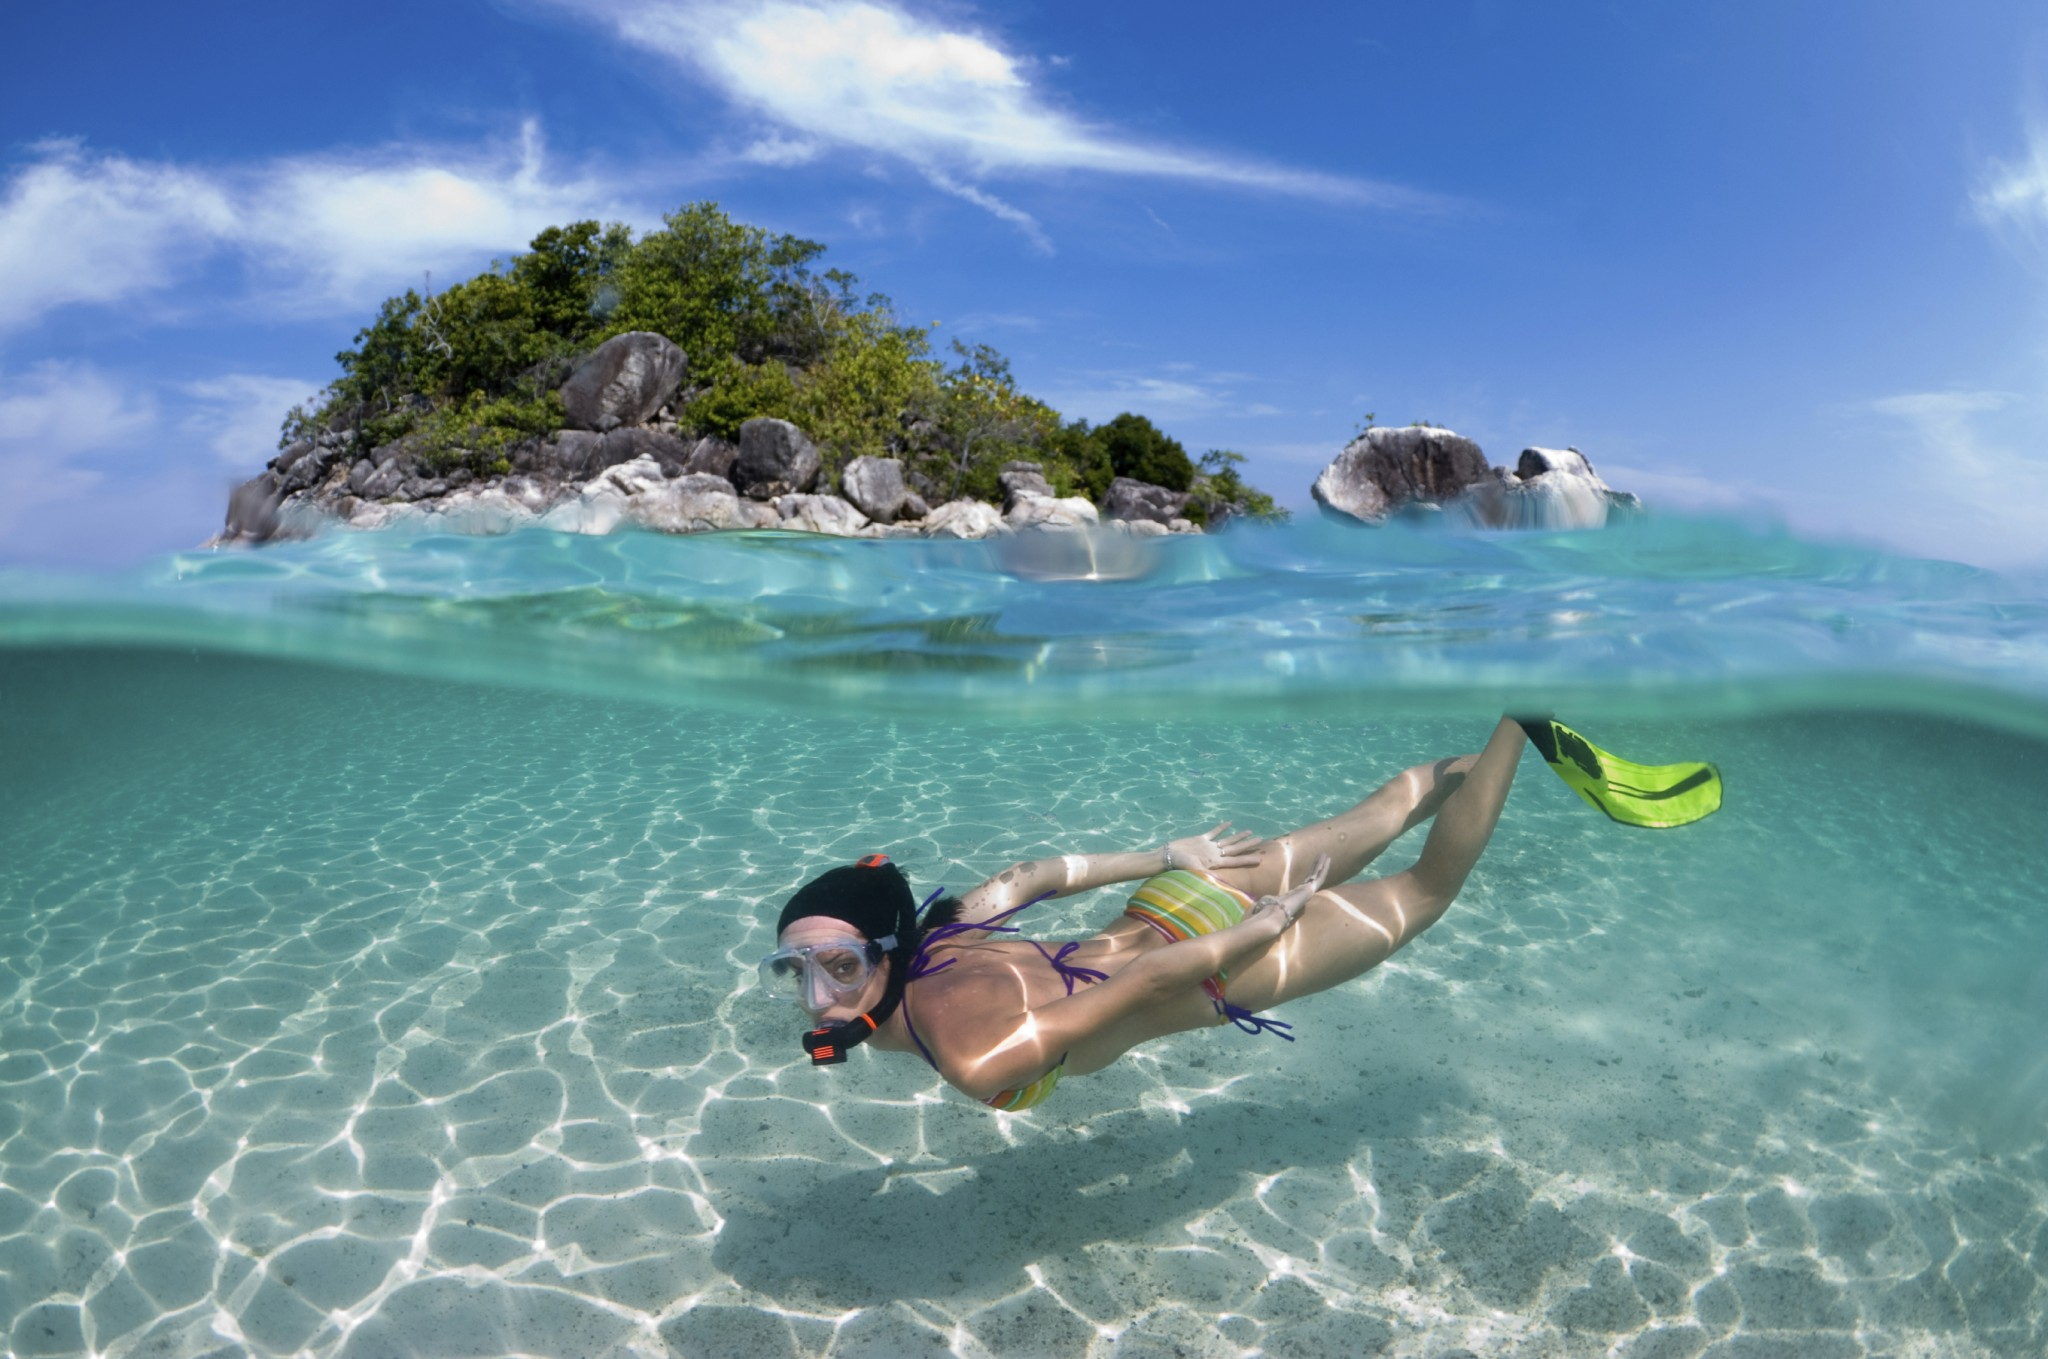 Go snorkeling in the clear blue waters.